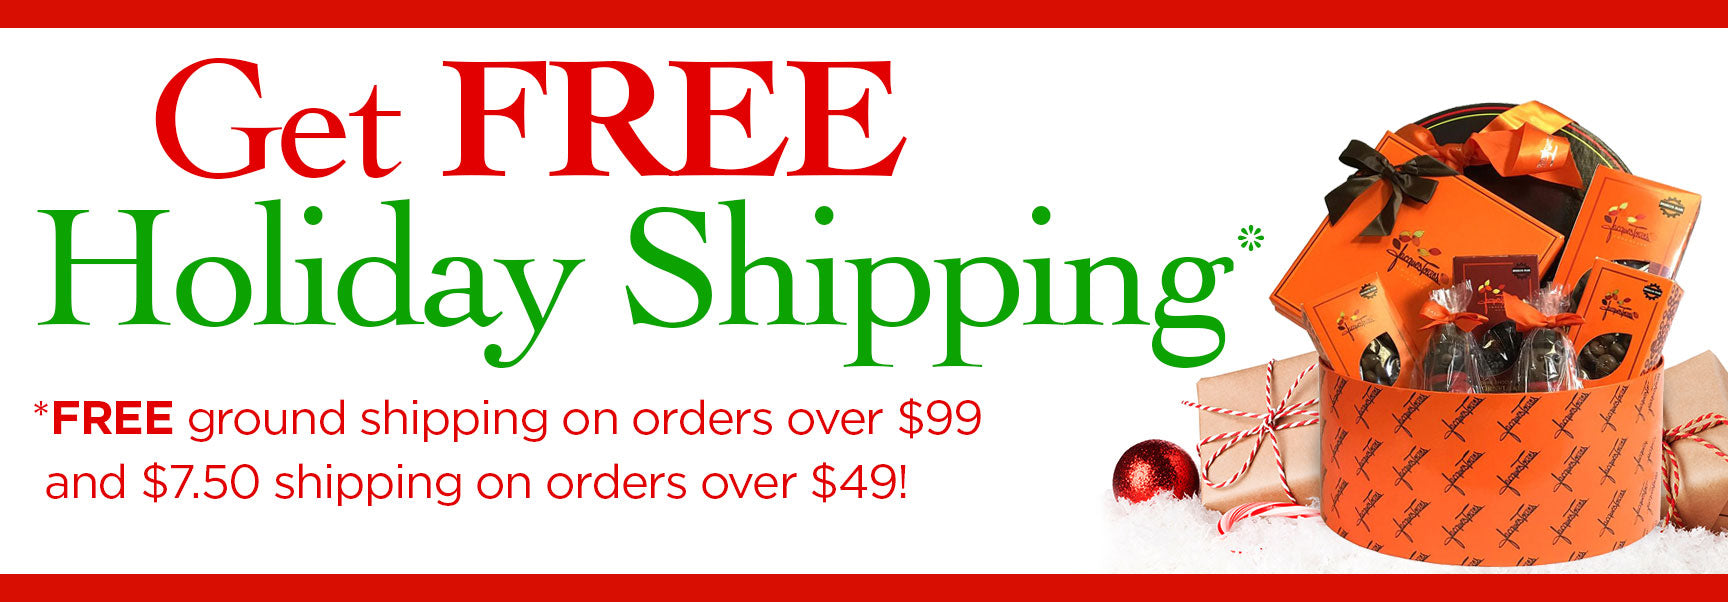 Free Ground Holiday Shipping